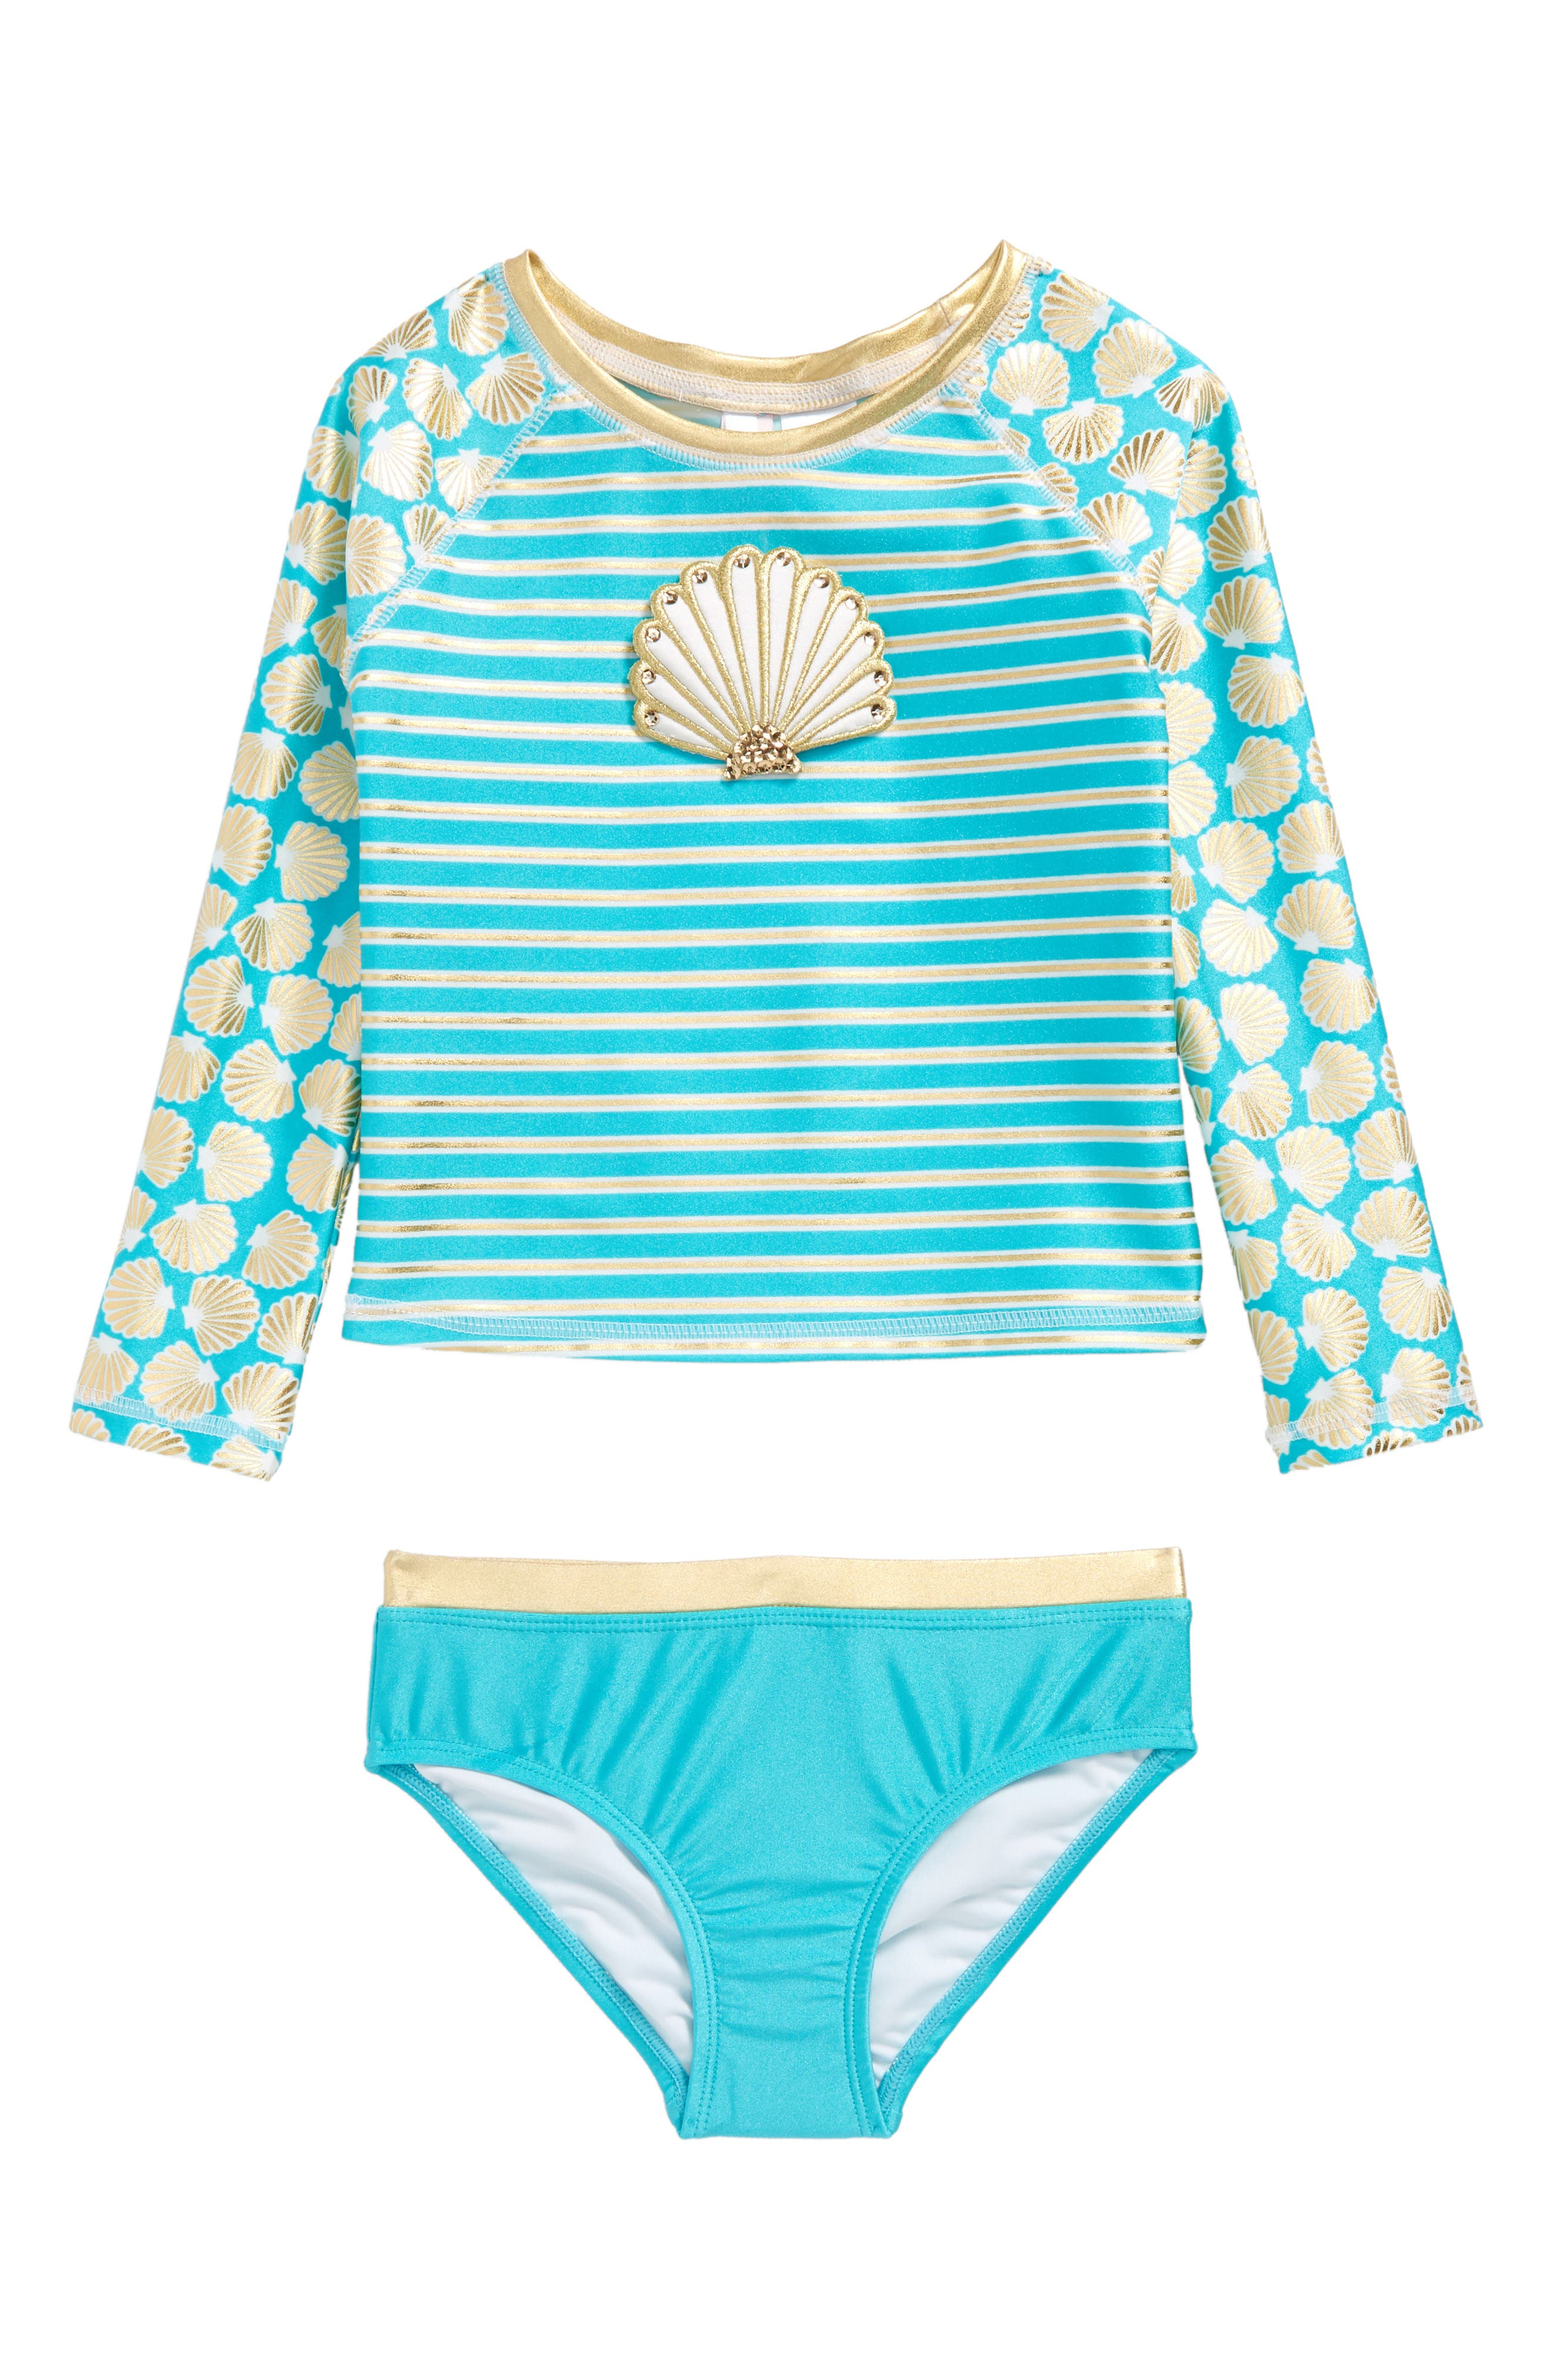 Seashell Stripe Two-Piece Rashguard Swimsuit,                         Main,                         color, 400